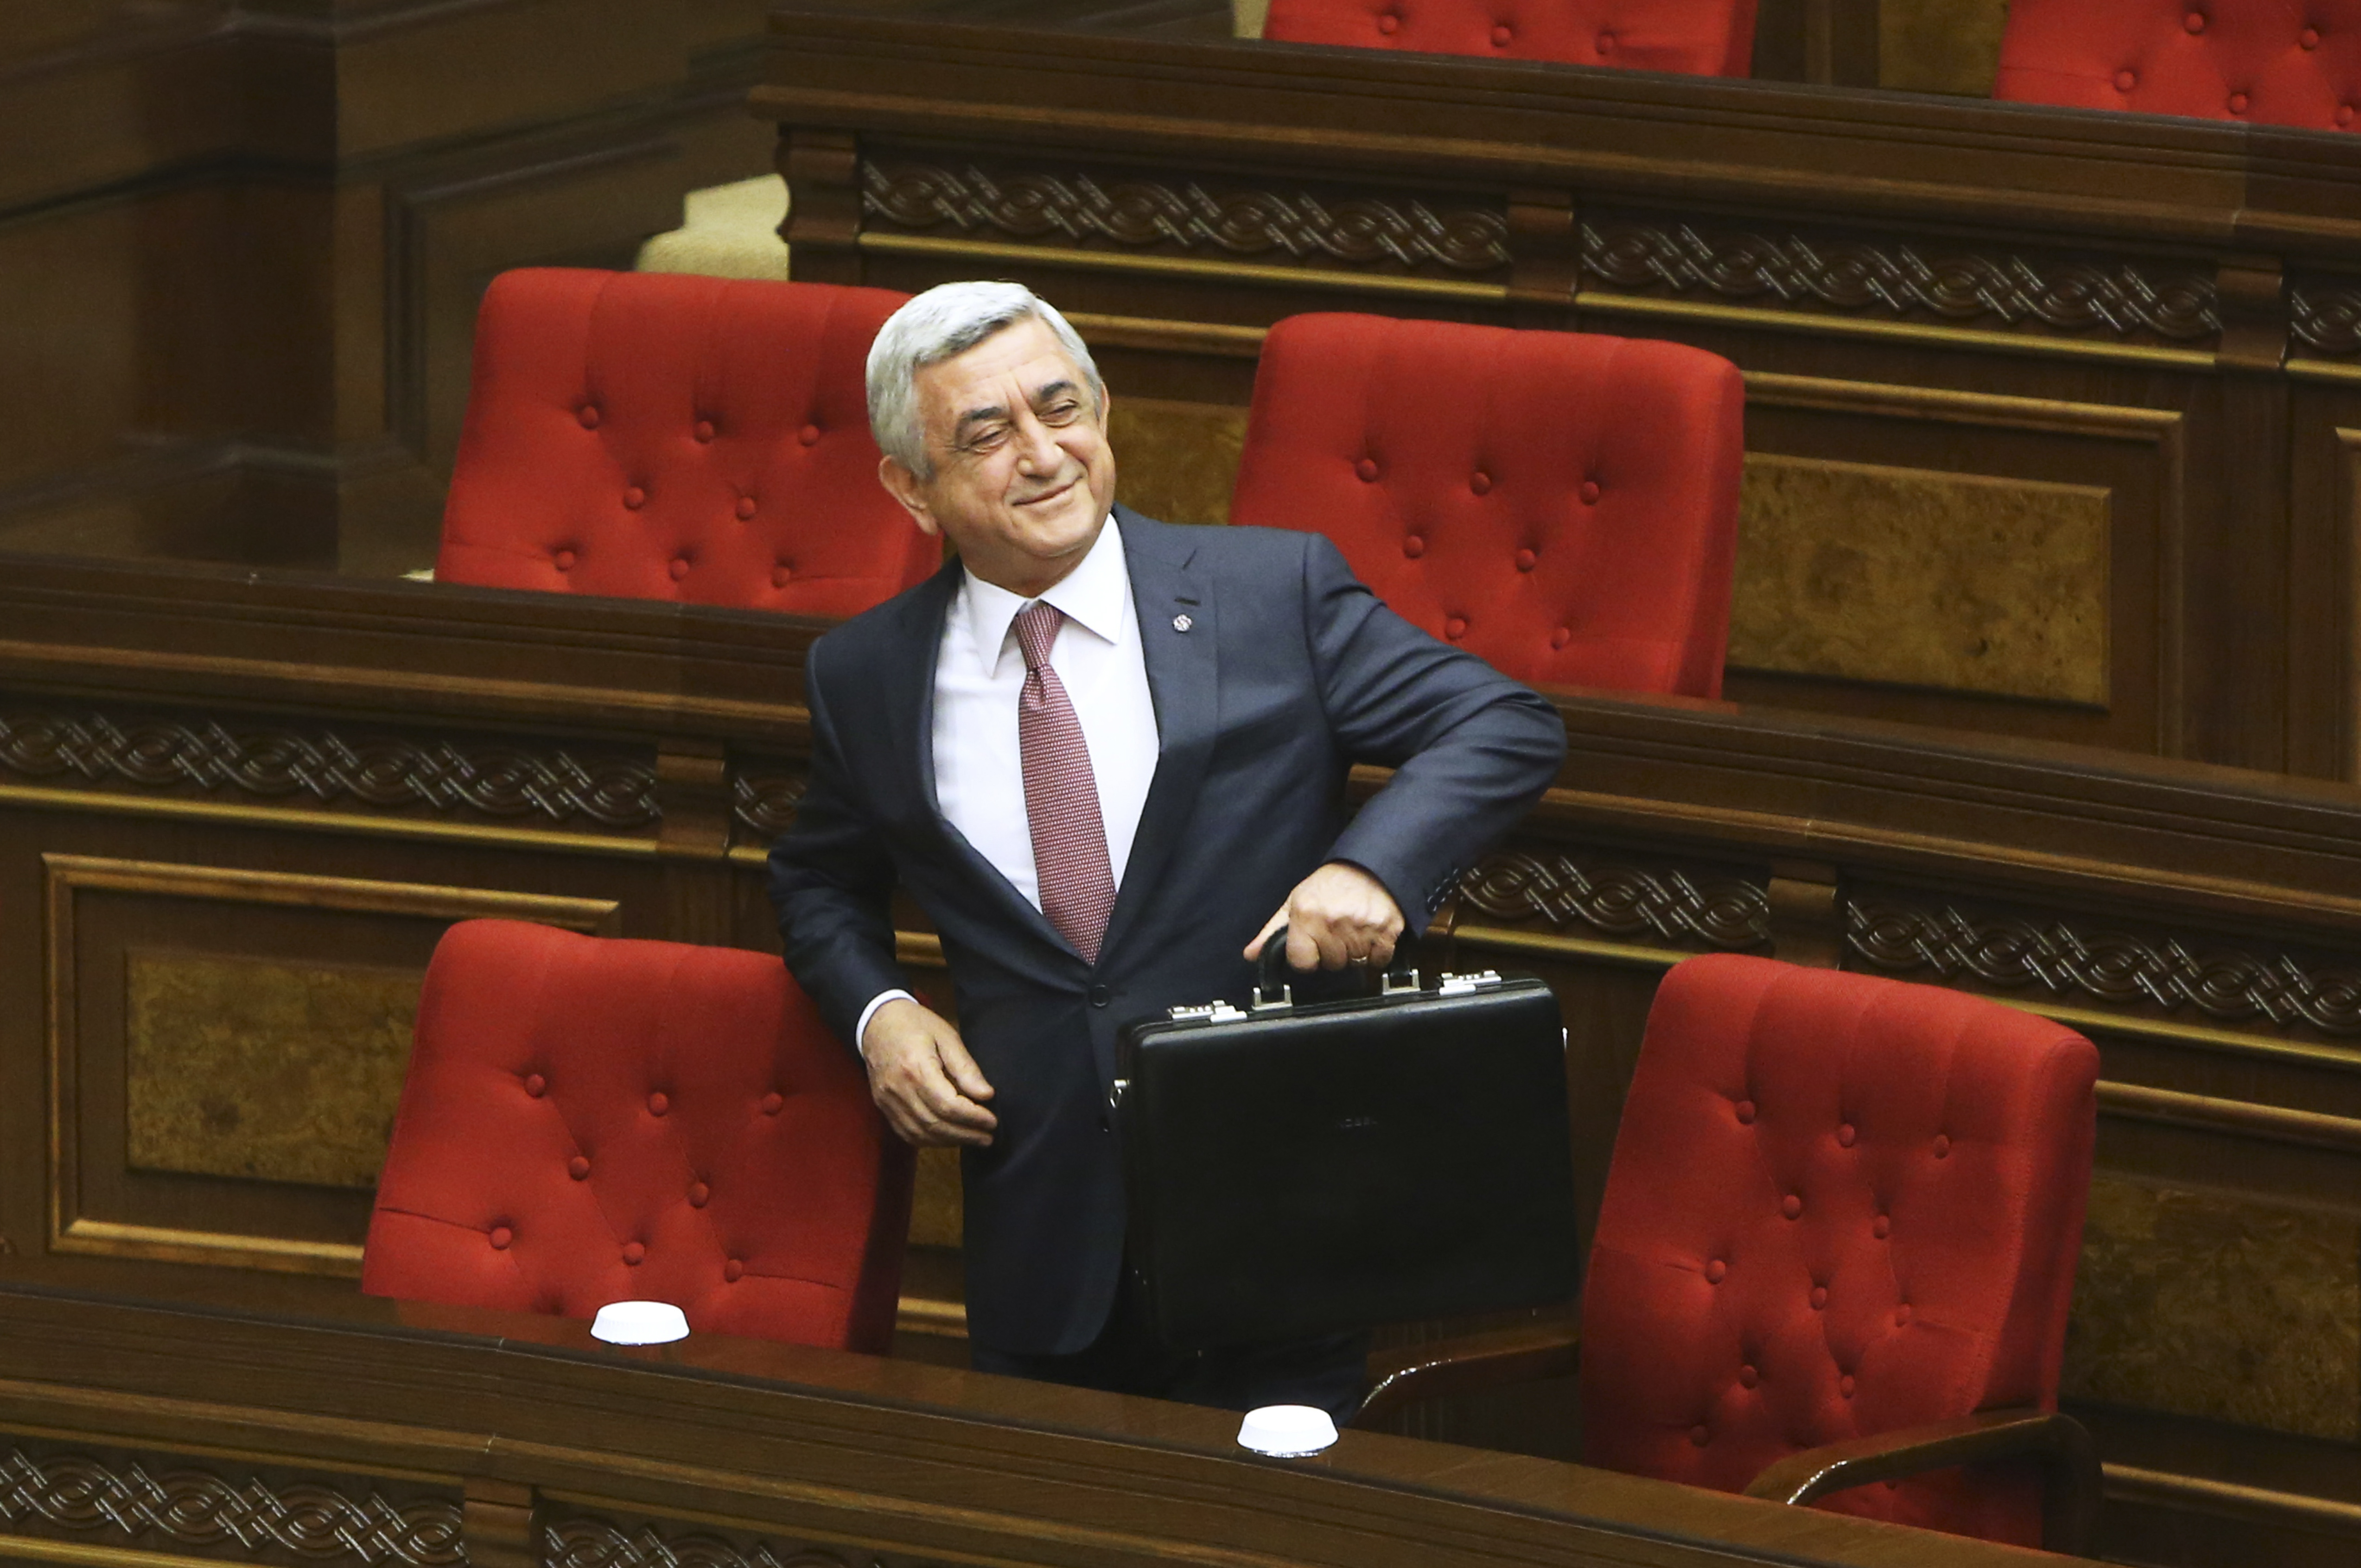 Armenia's former President Serzh Sarksyan attends a session of the parliament in Yerevan, Armenia, Apr. 17, 2018.